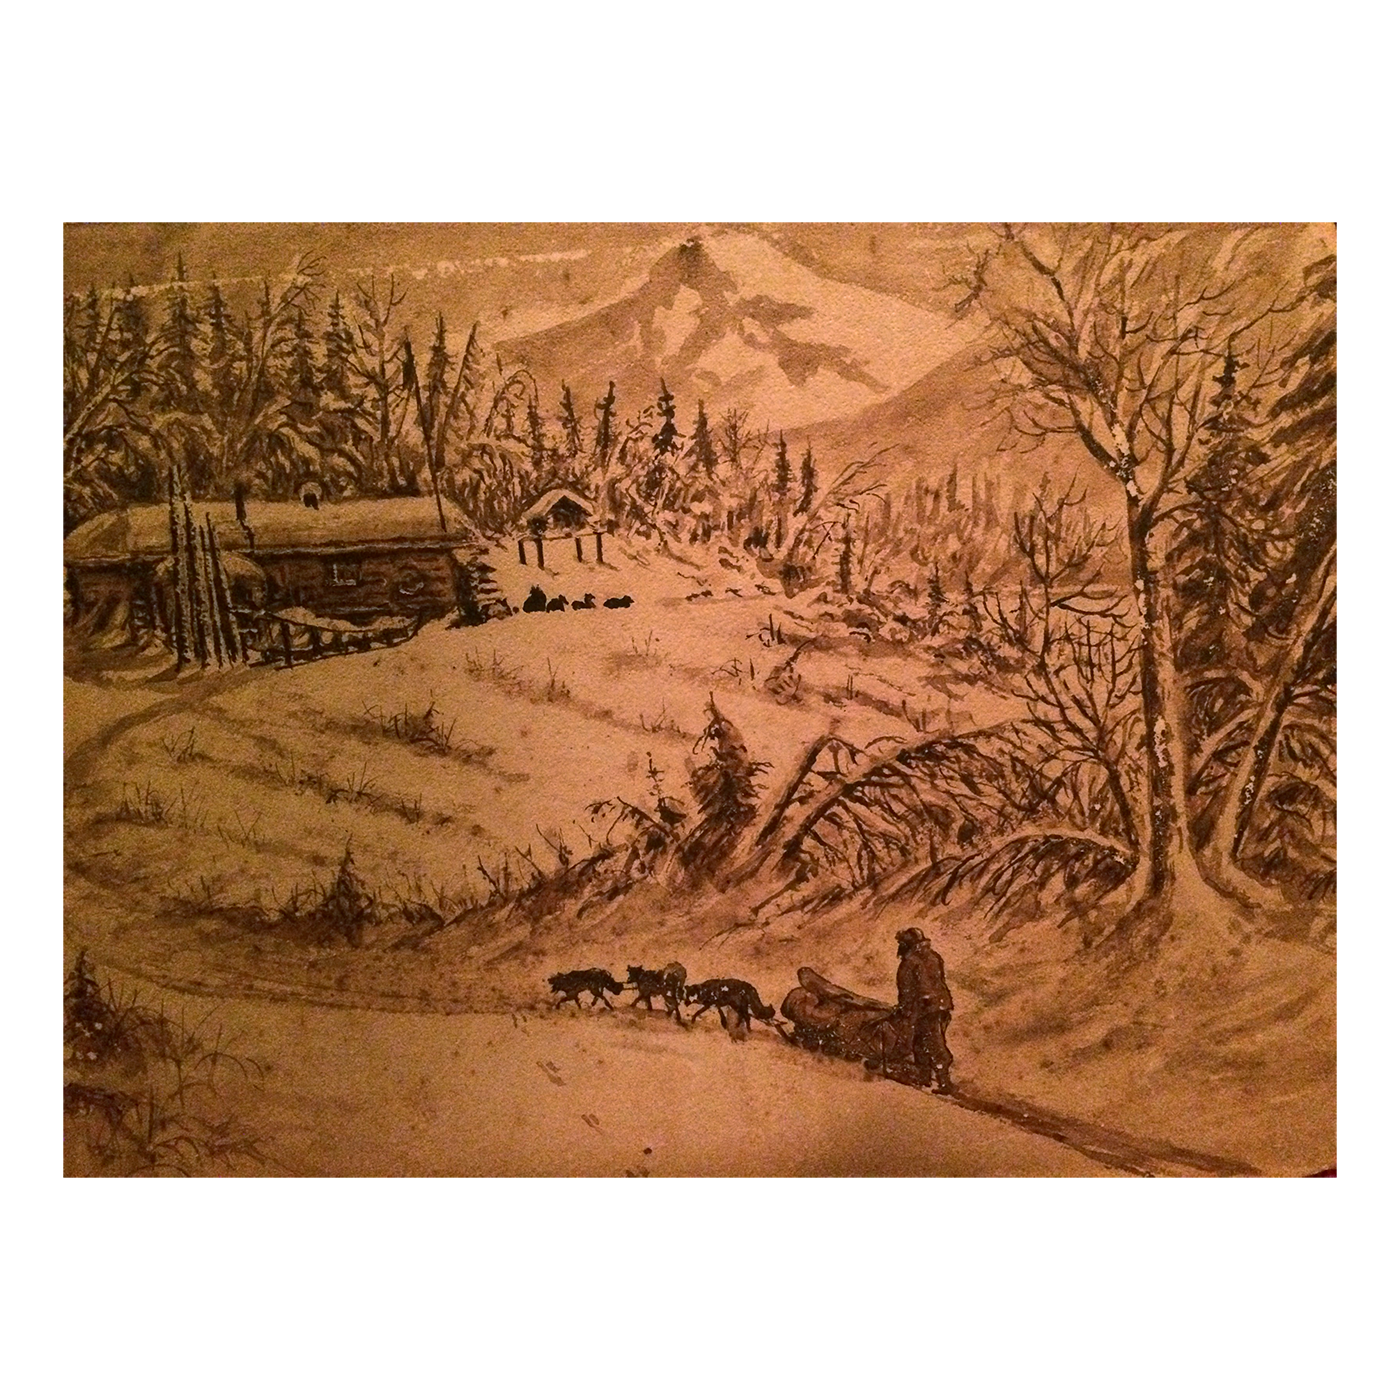 Alaskan folk art drawings titled Yukon Territory c.1880